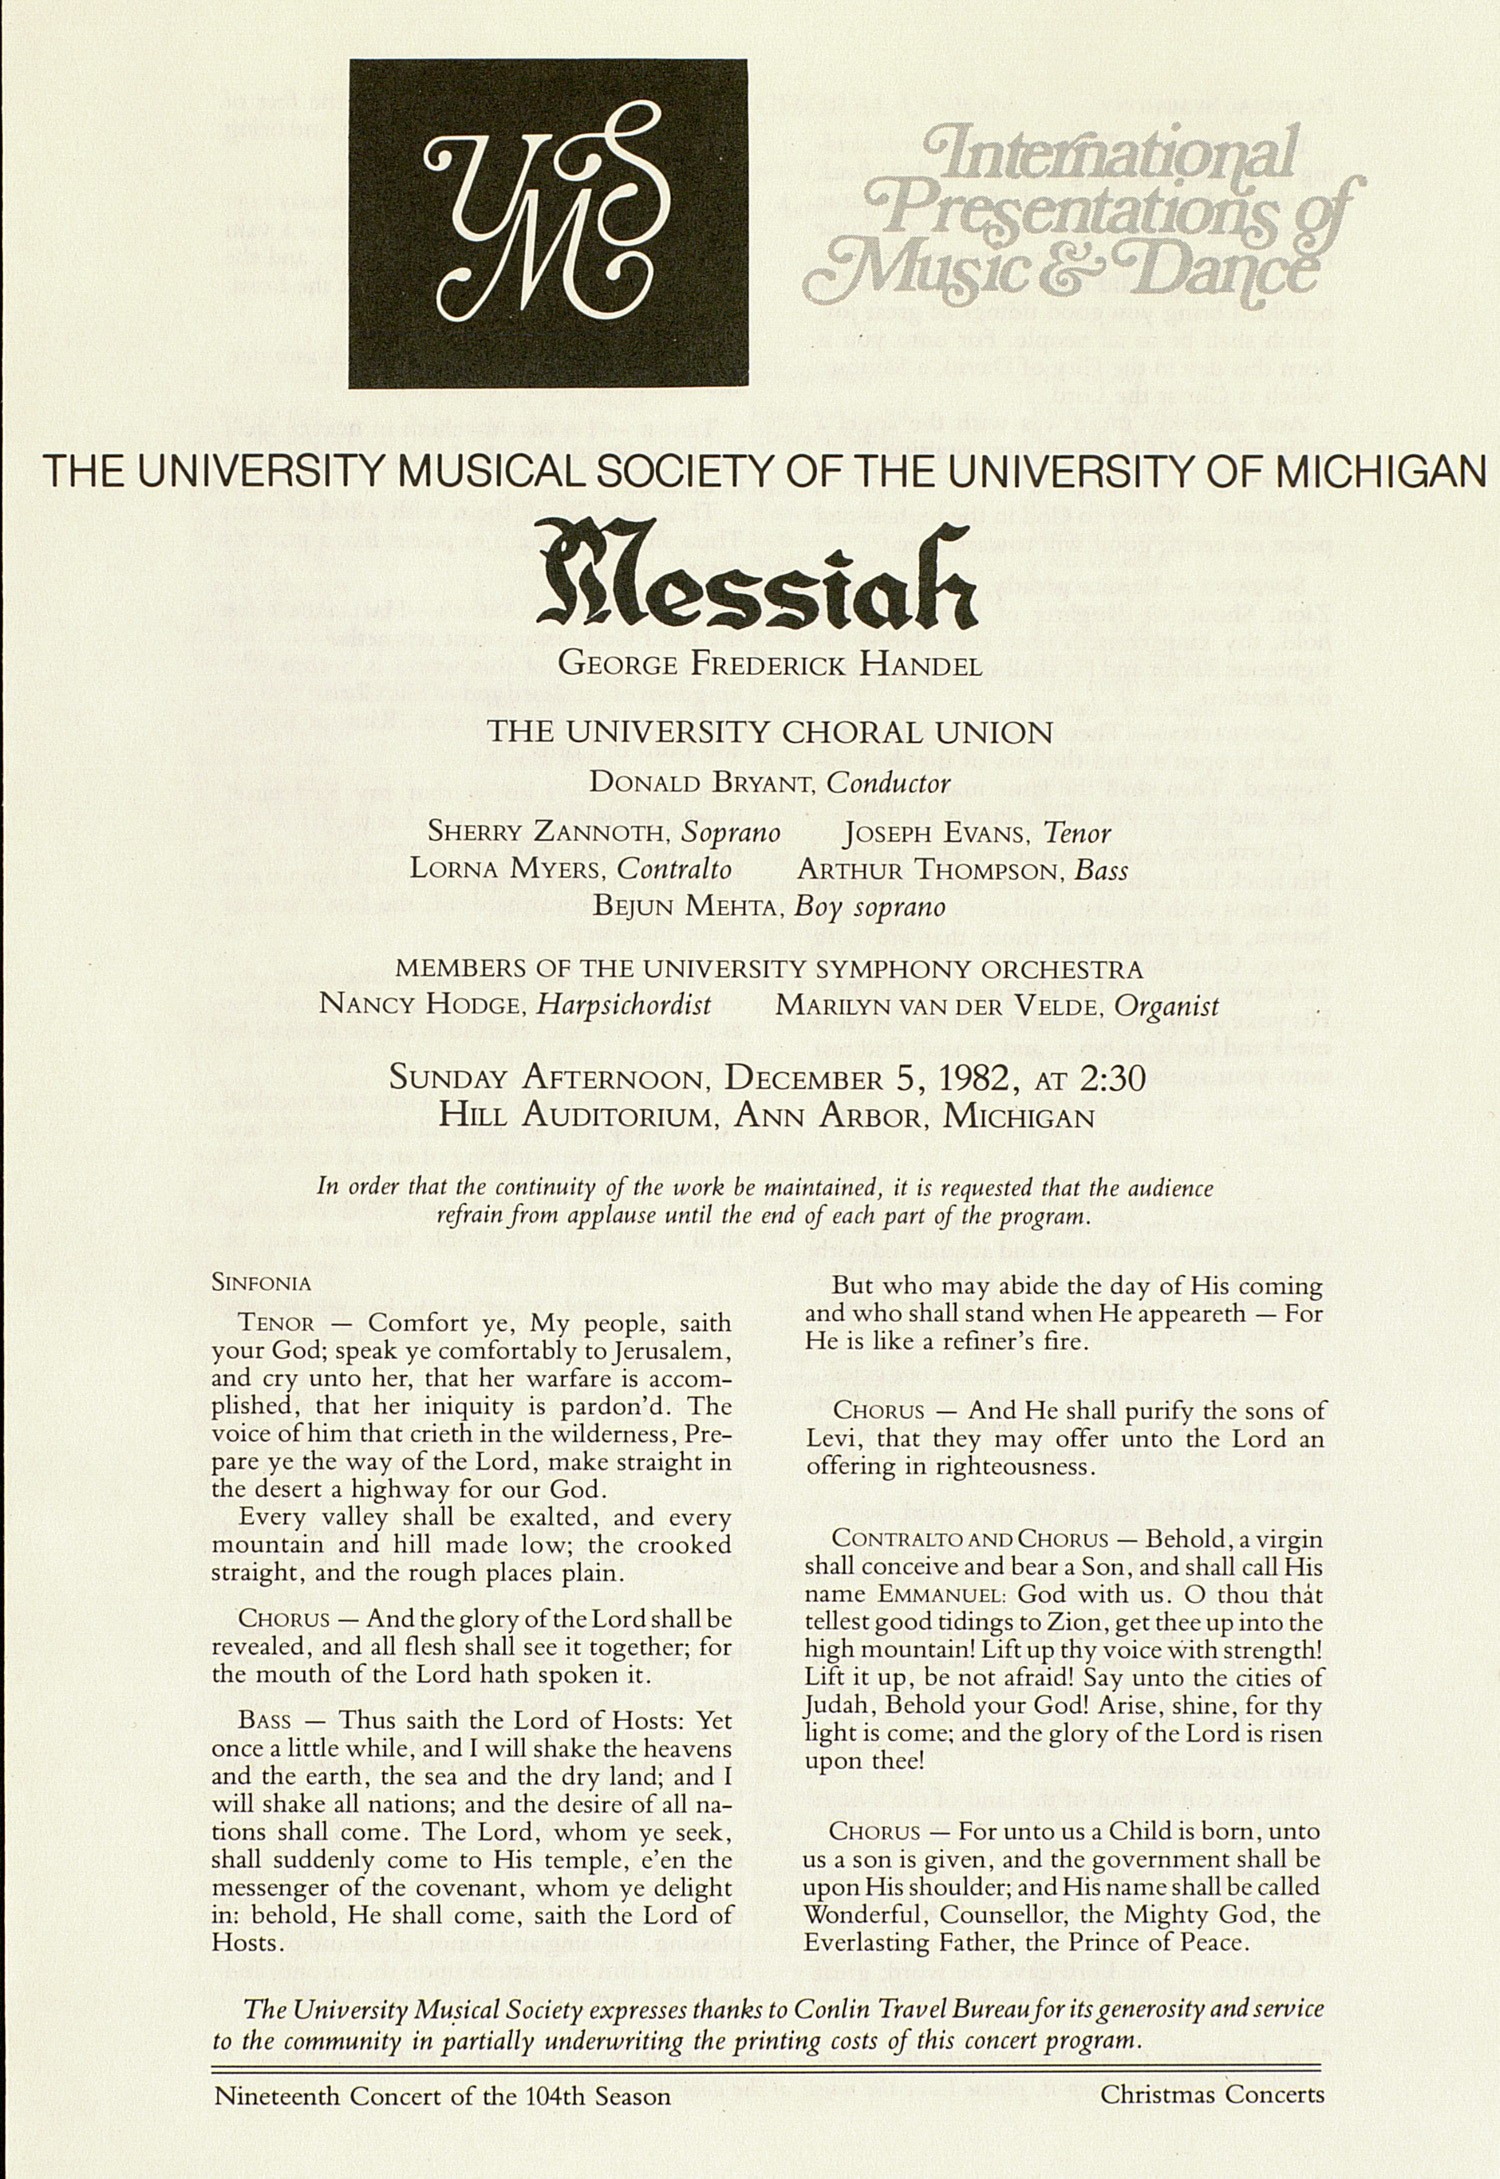 UMS Concert Program, December 5, 1982: Messiah -- George Frederick Handel image